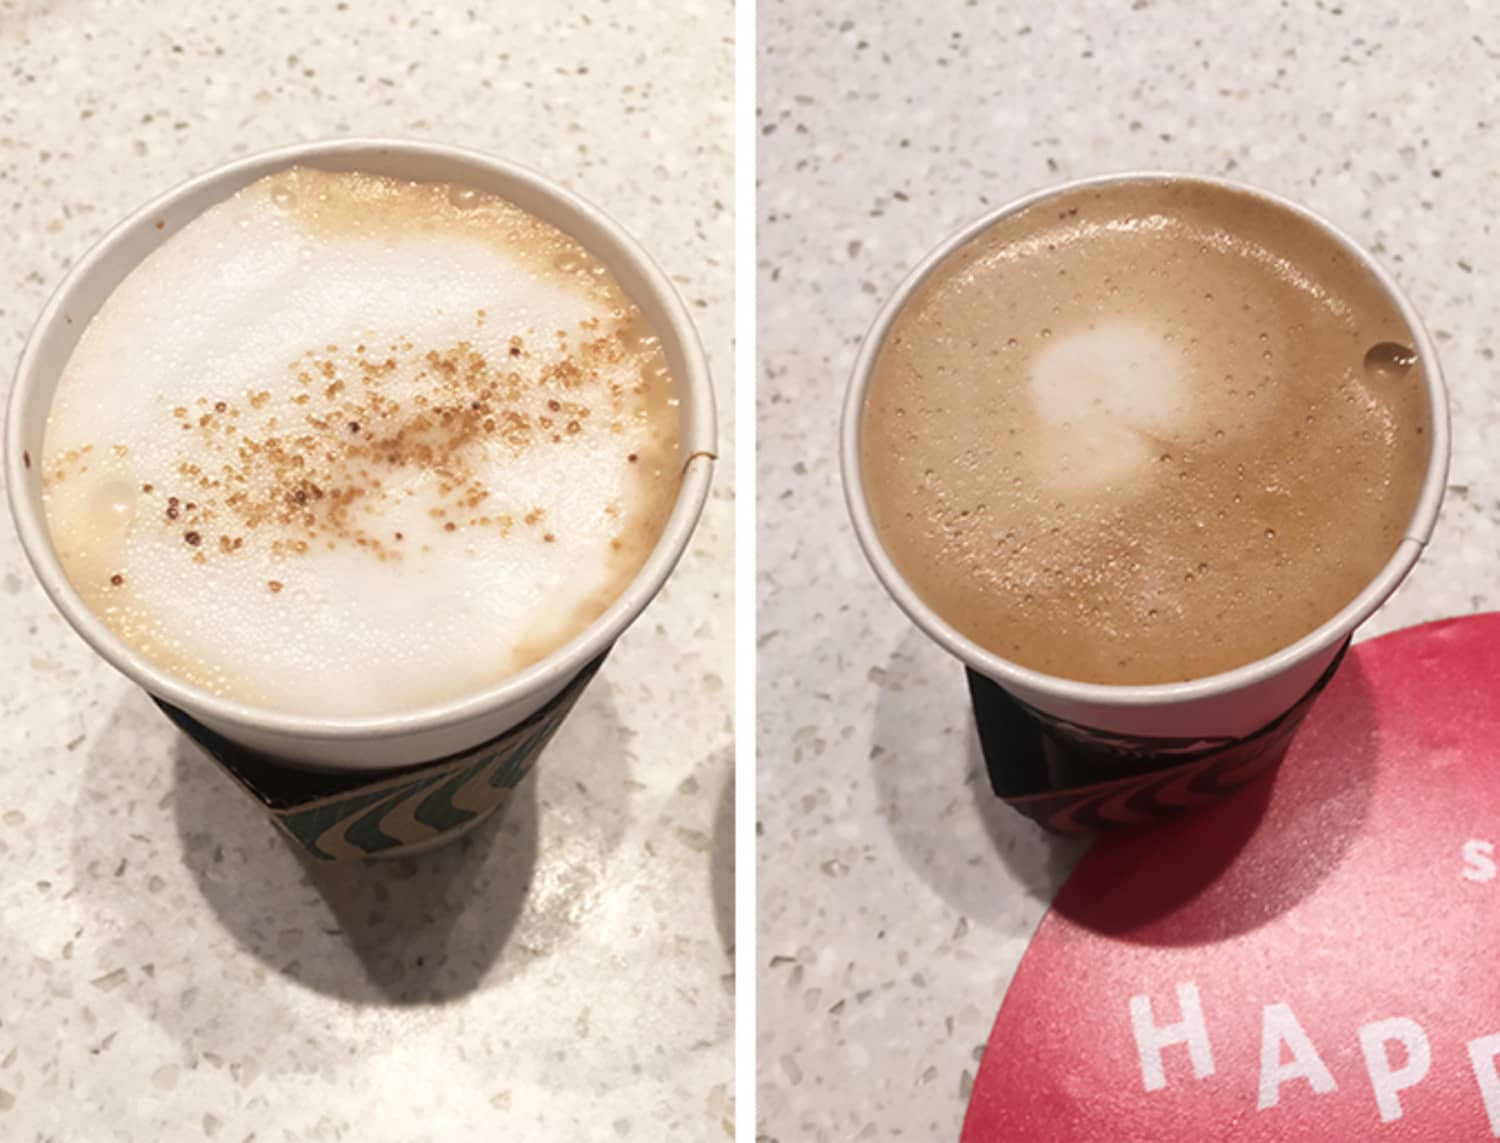 I Tried the Two NEW Starbucks Drinks on the Permanent Menu — Here's Which One I Liked More